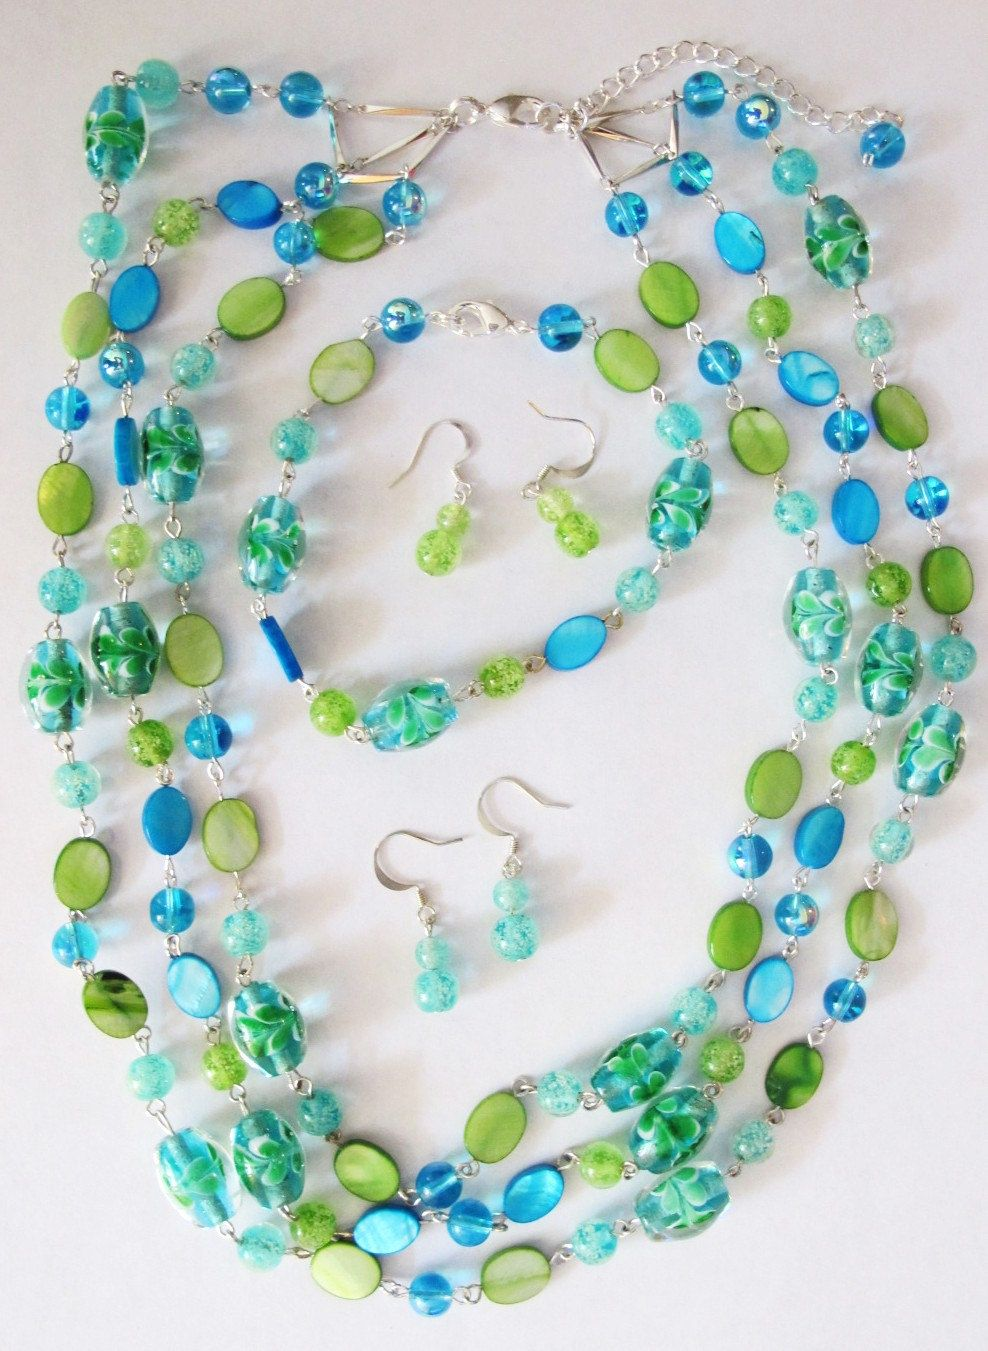 Stylish, glow-in-the-dark blue and green glass bead necklace, bracelet, duel earring set. by Julesdimension on Etsy